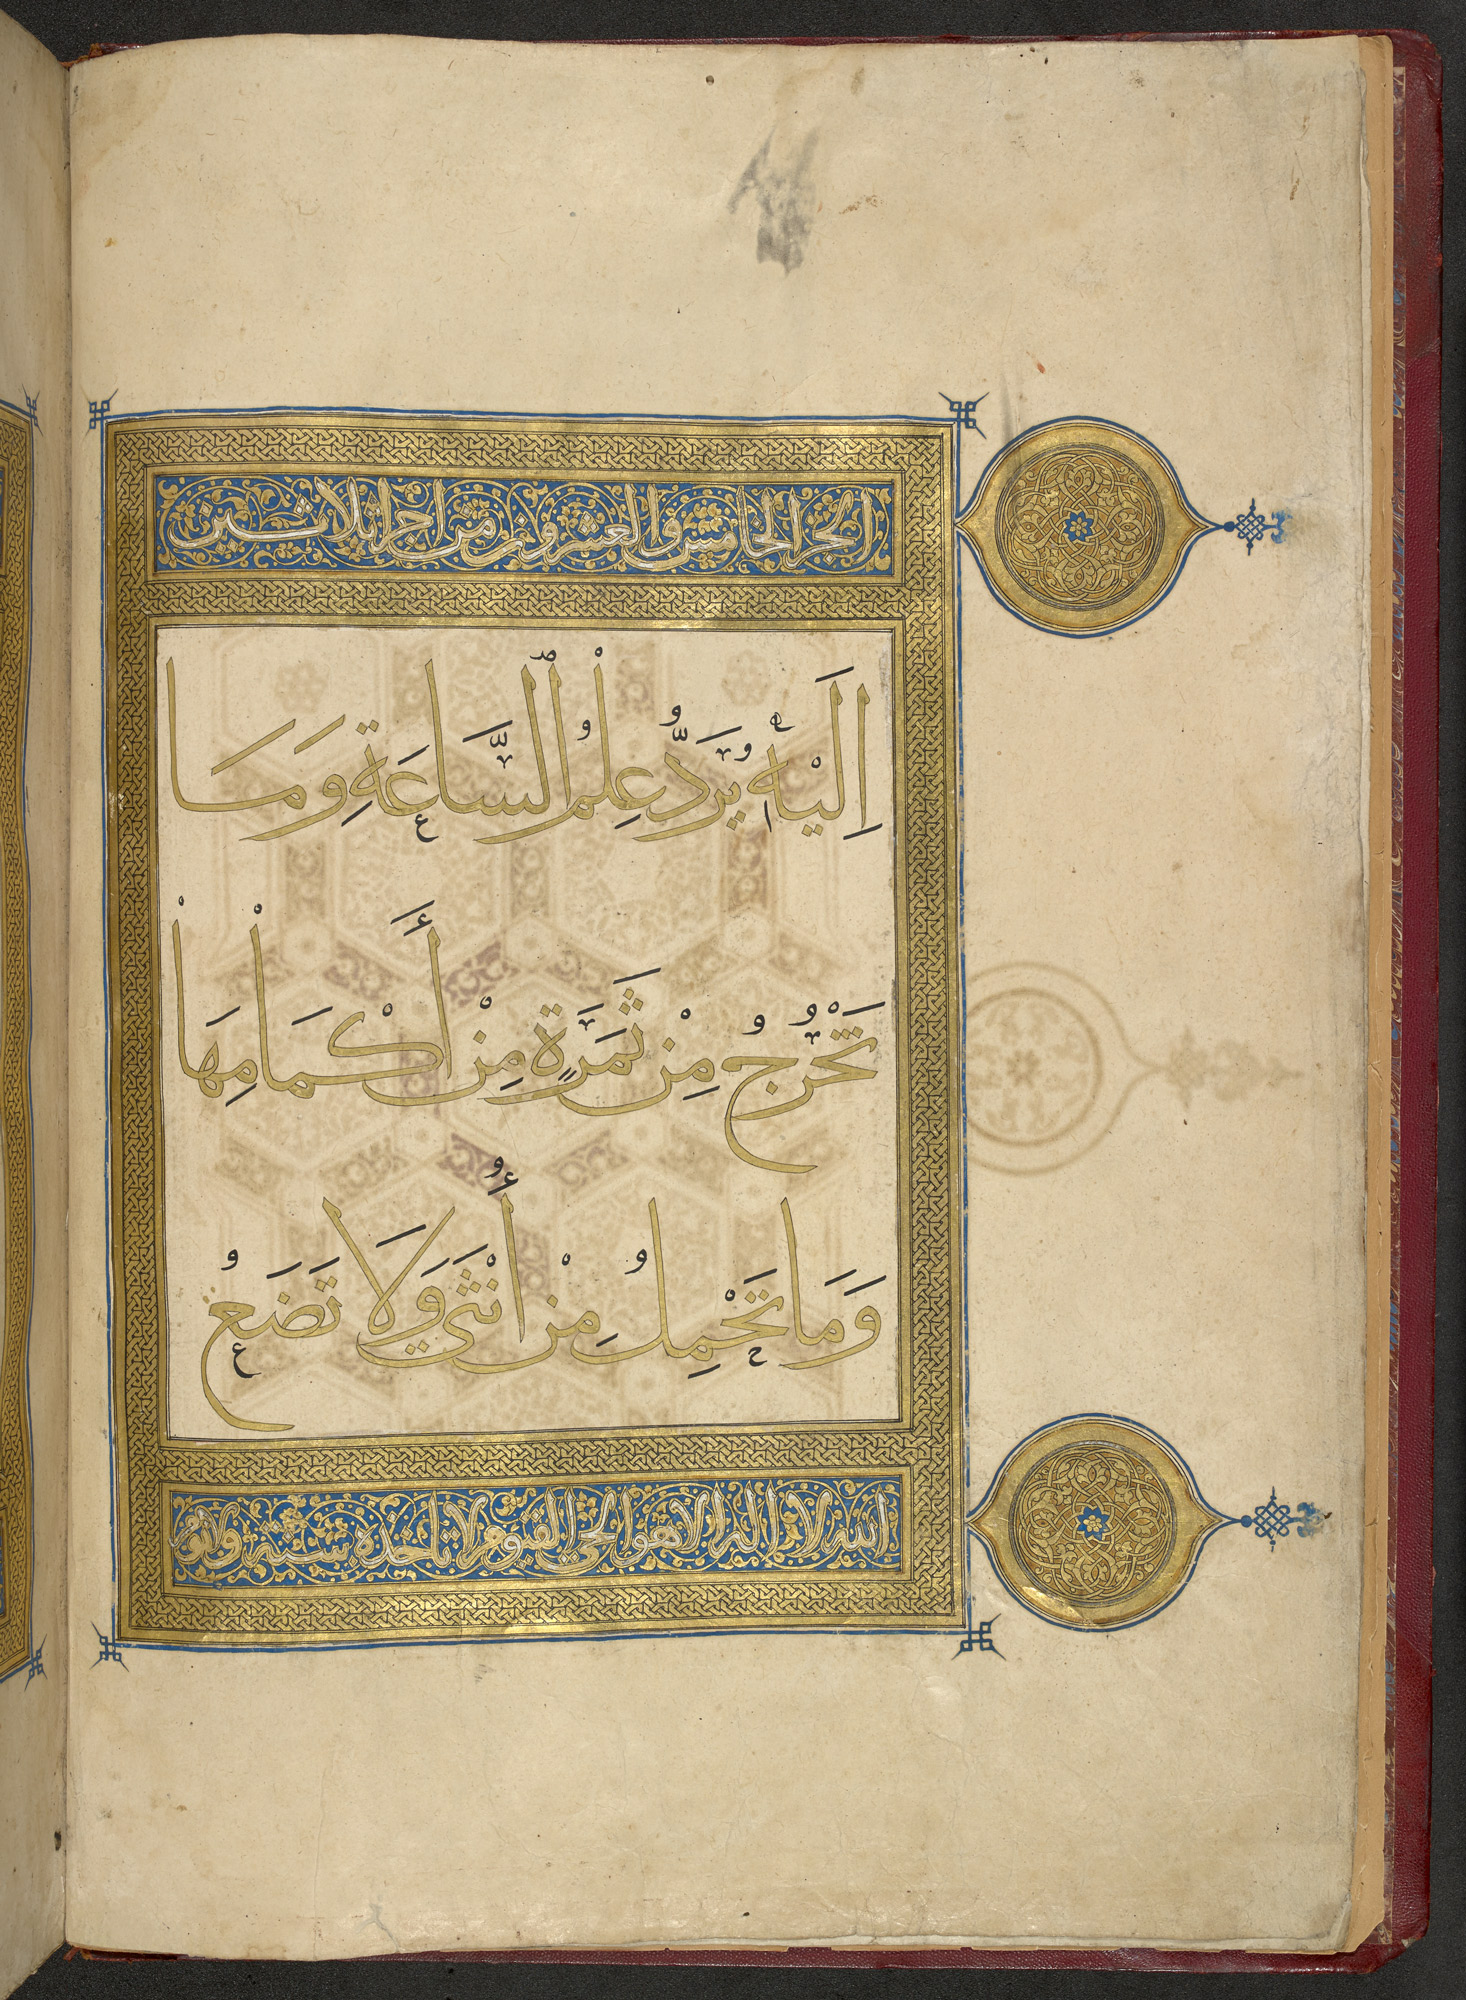 Collection items - The British Library